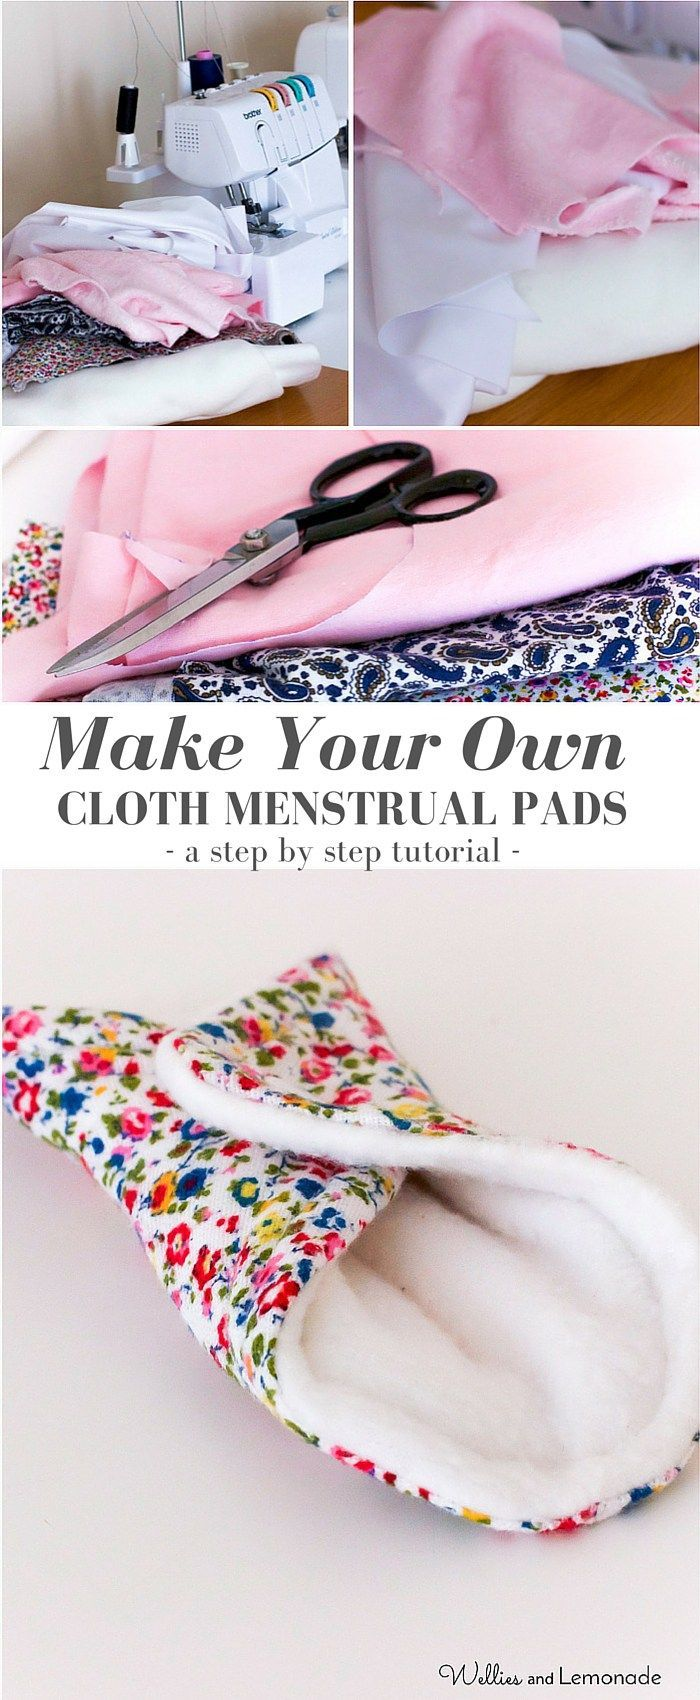 Want to give it a try and make your own pads? Try this step by step tutorial with free printables! Pin now for later